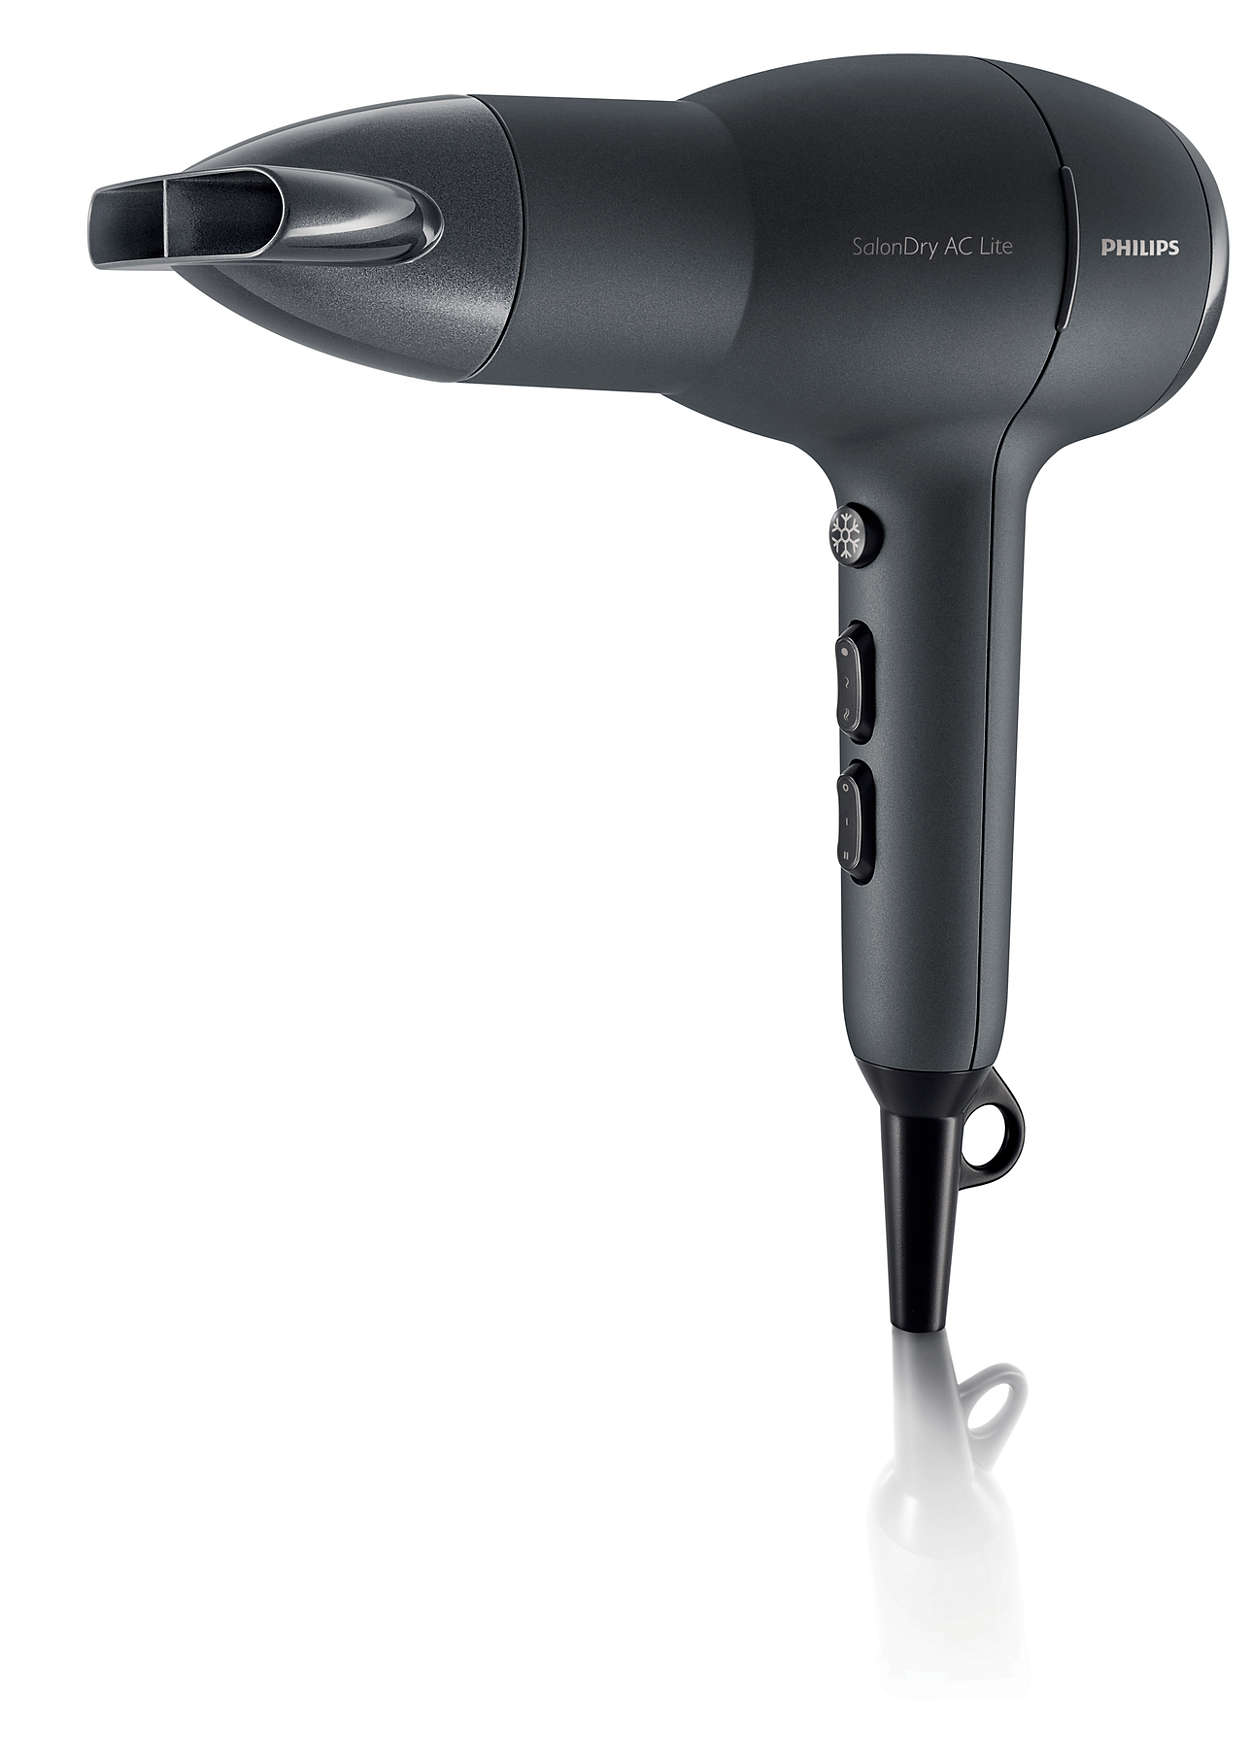 The lightest AC dryer for salon results*